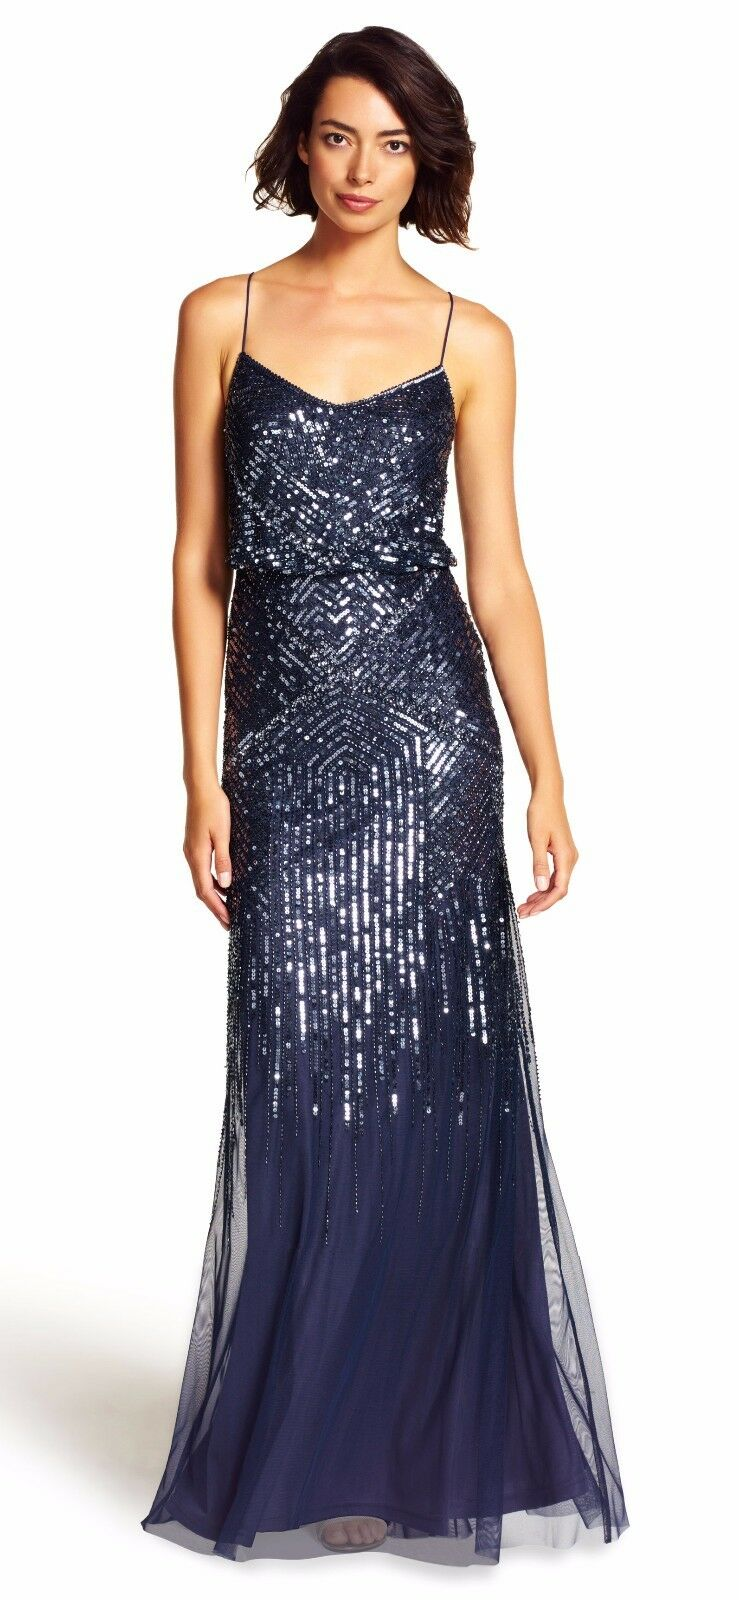 Adrianna Papell Midnight bluee Sequin Embellished Blouson Gown Size 14 NWT  320